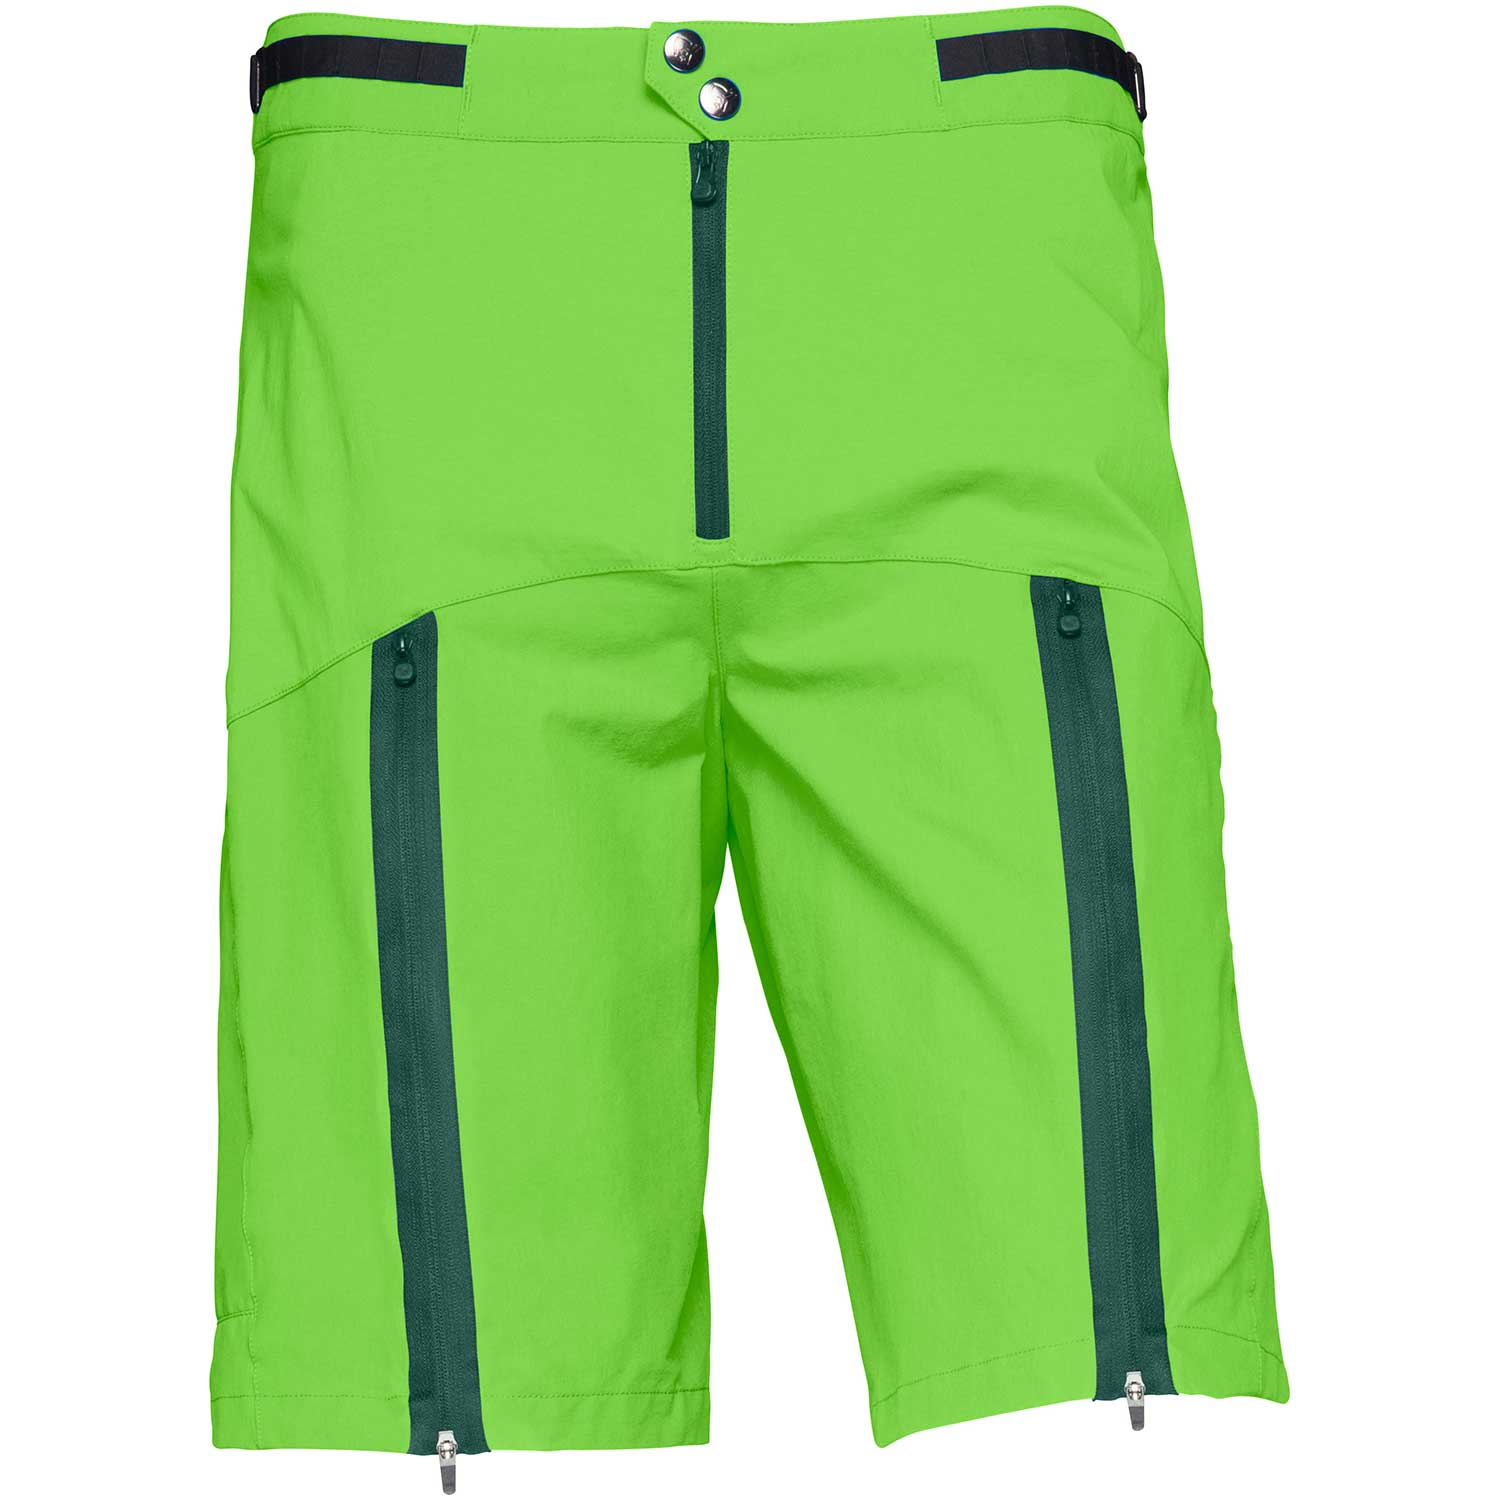 fjørå super light weight Shorts (M)